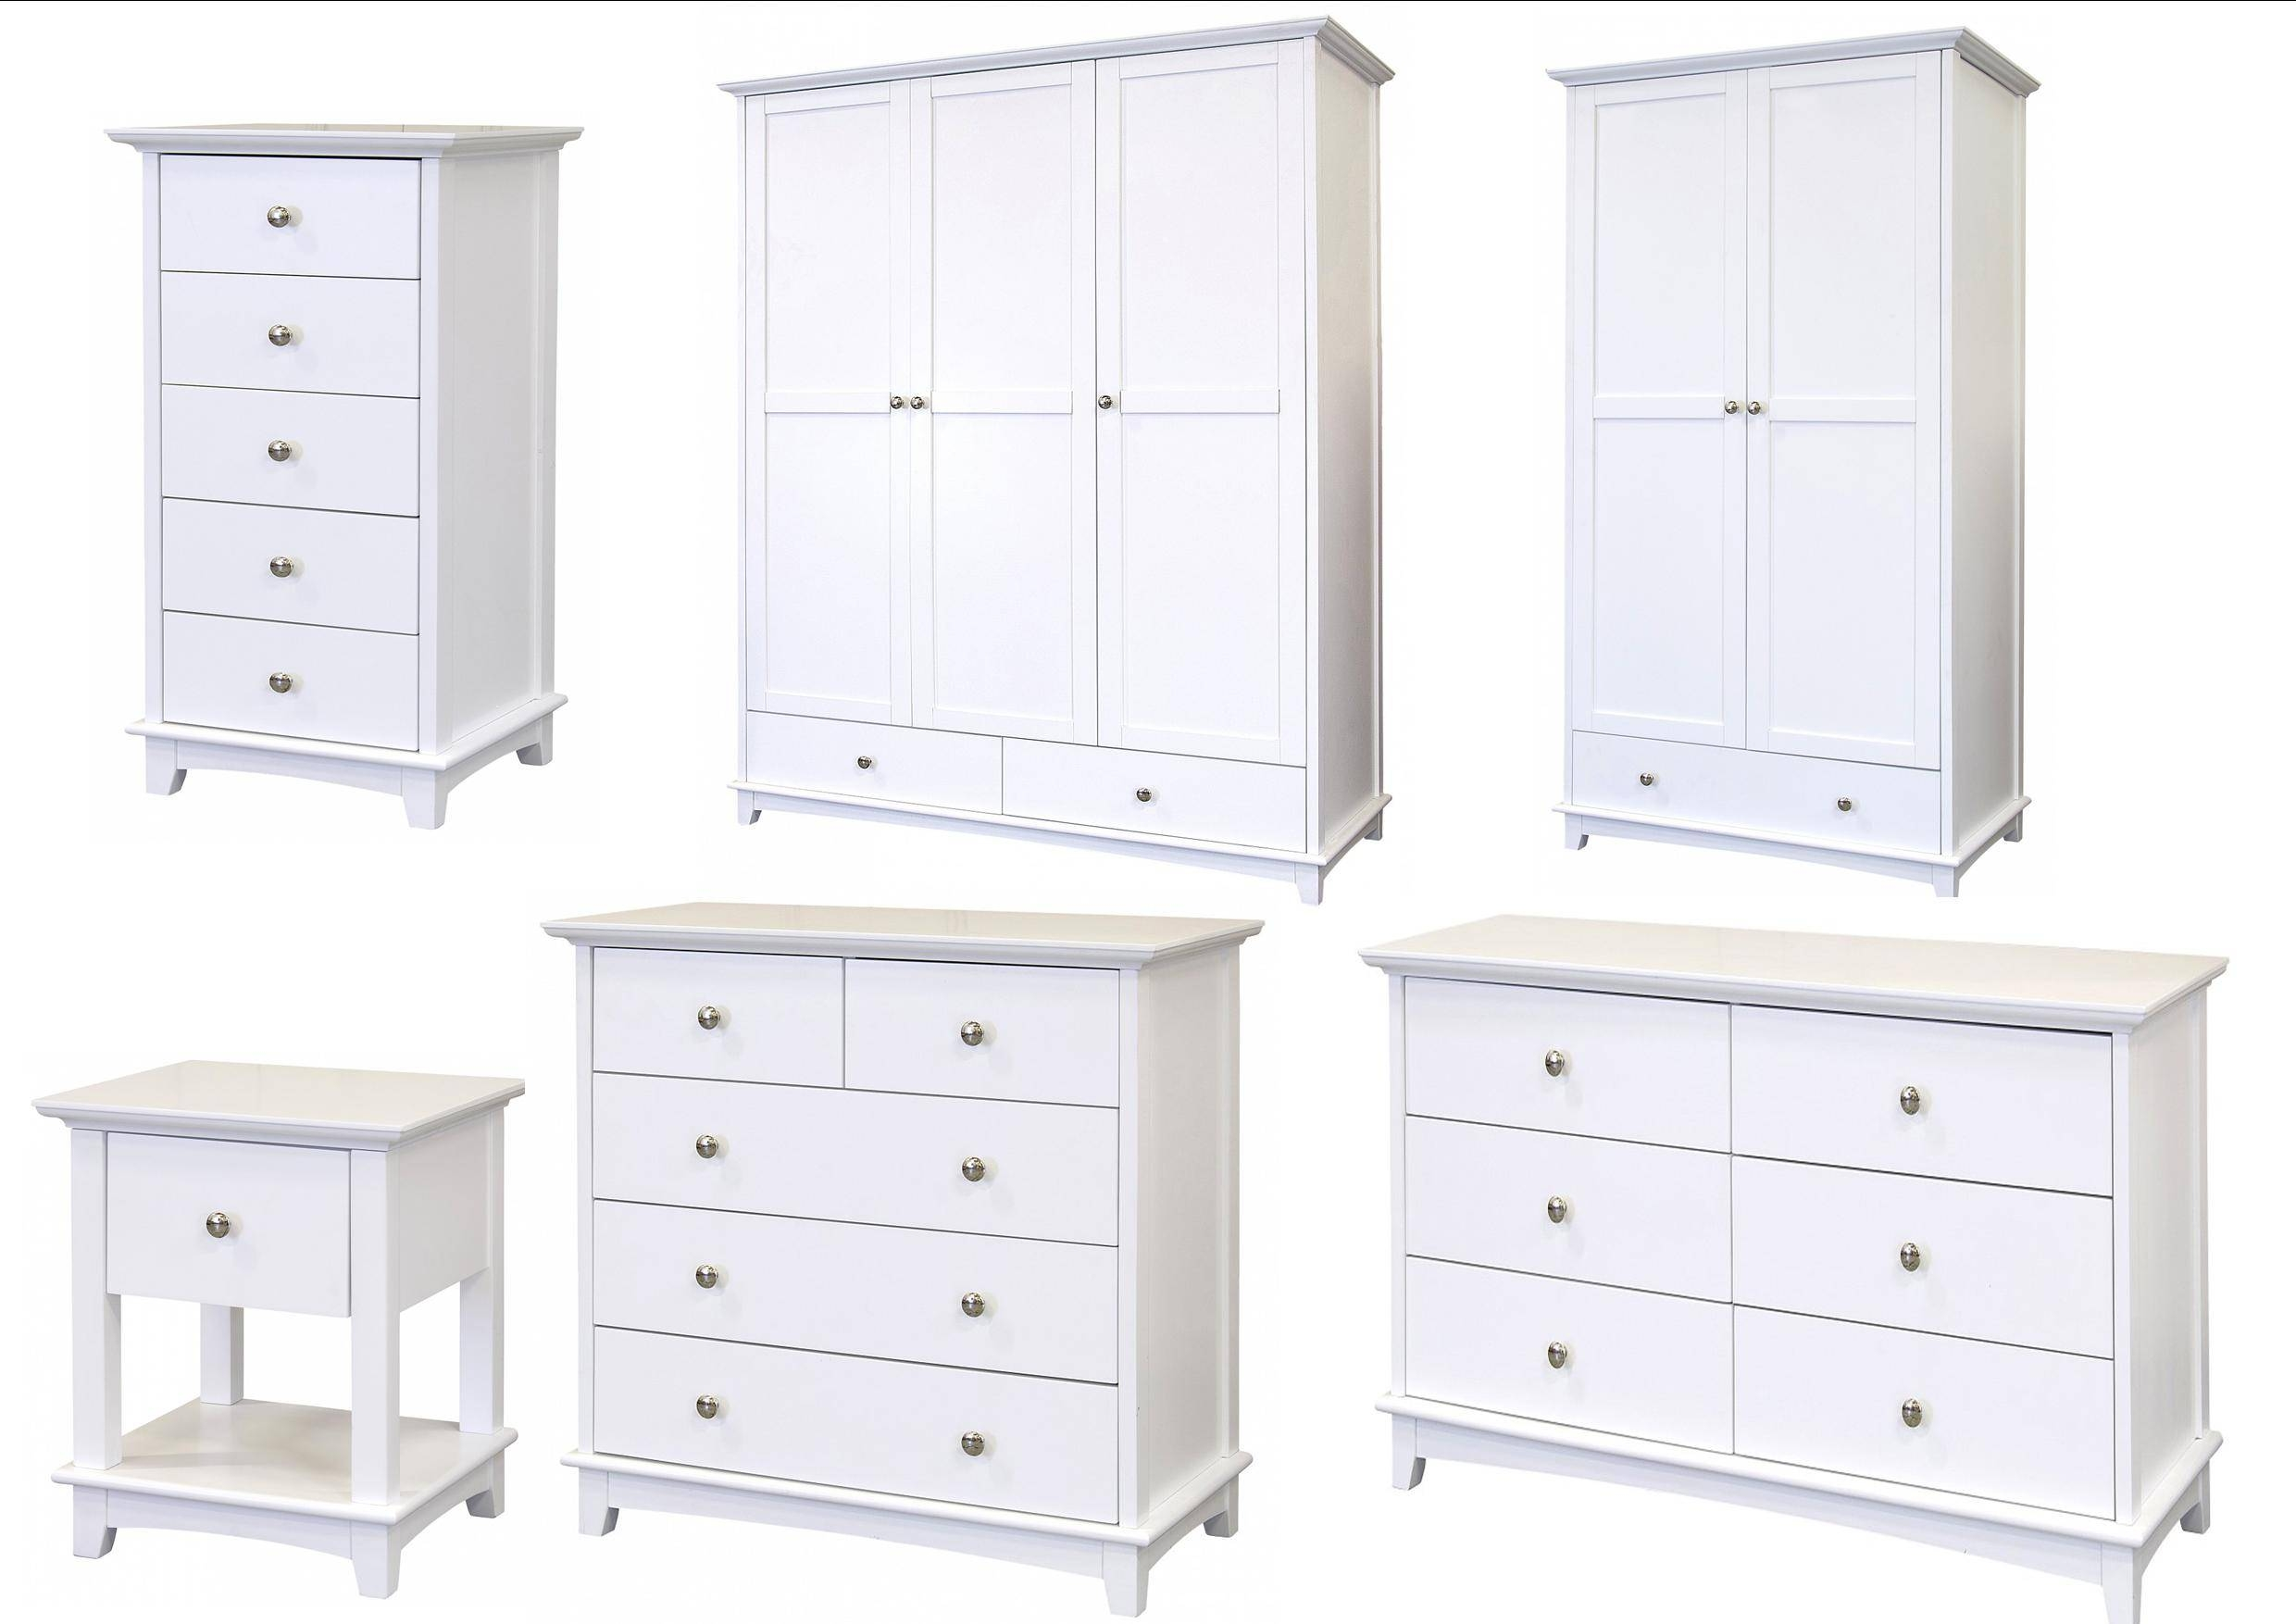 Toulouse White Painted Bedroom Furniture - Bedside, Chest Of for White Painted Wardrobes (Image 12 of 15)